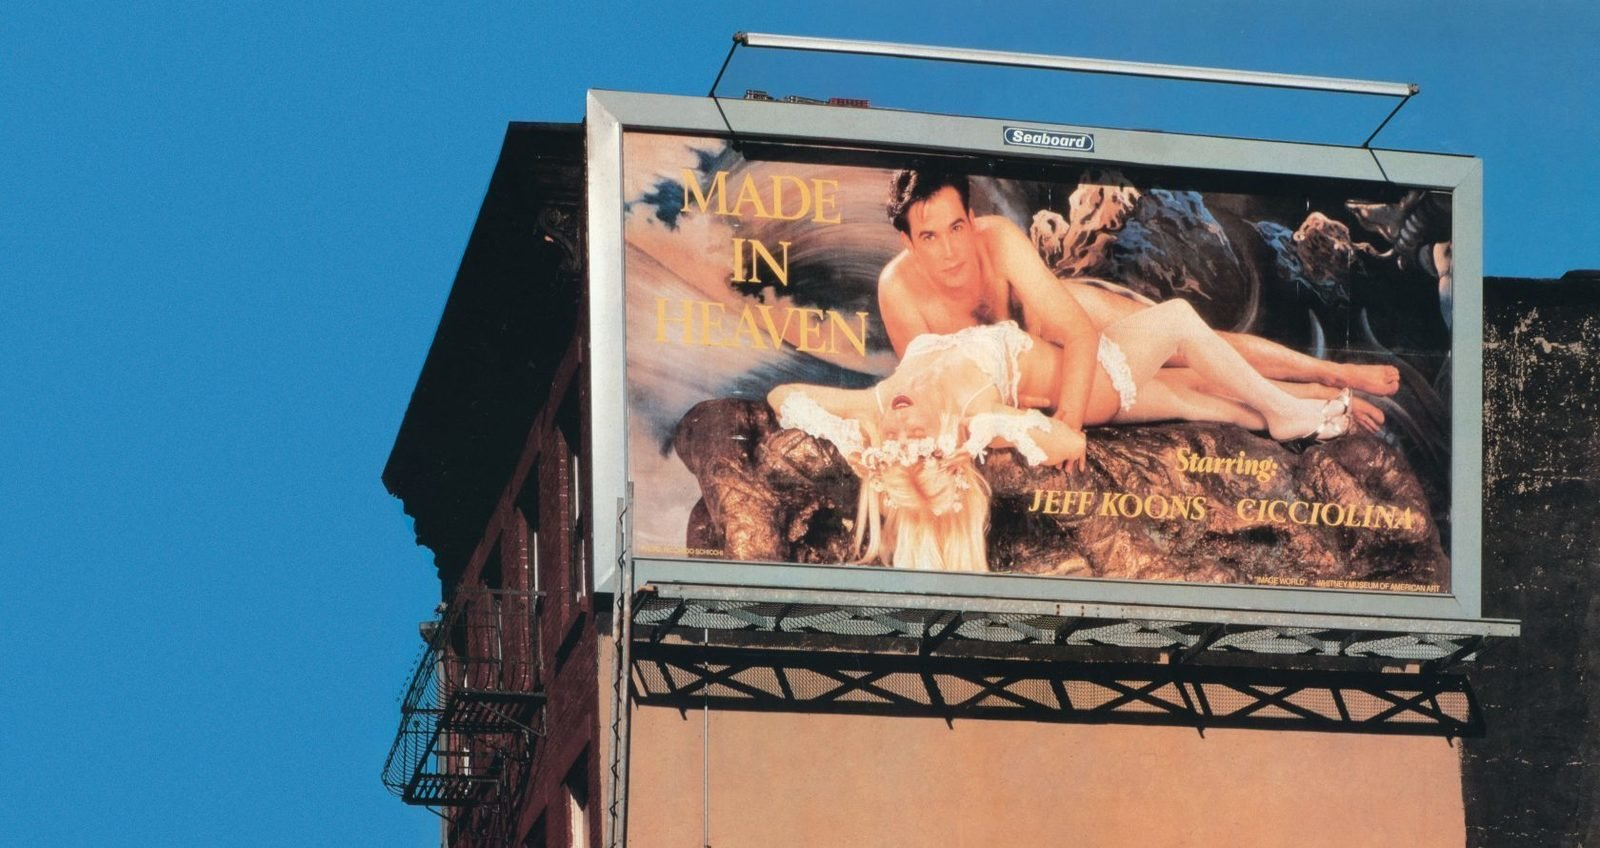 Watson and company jeff koons billboard 1600 0x0x1680x890 q85